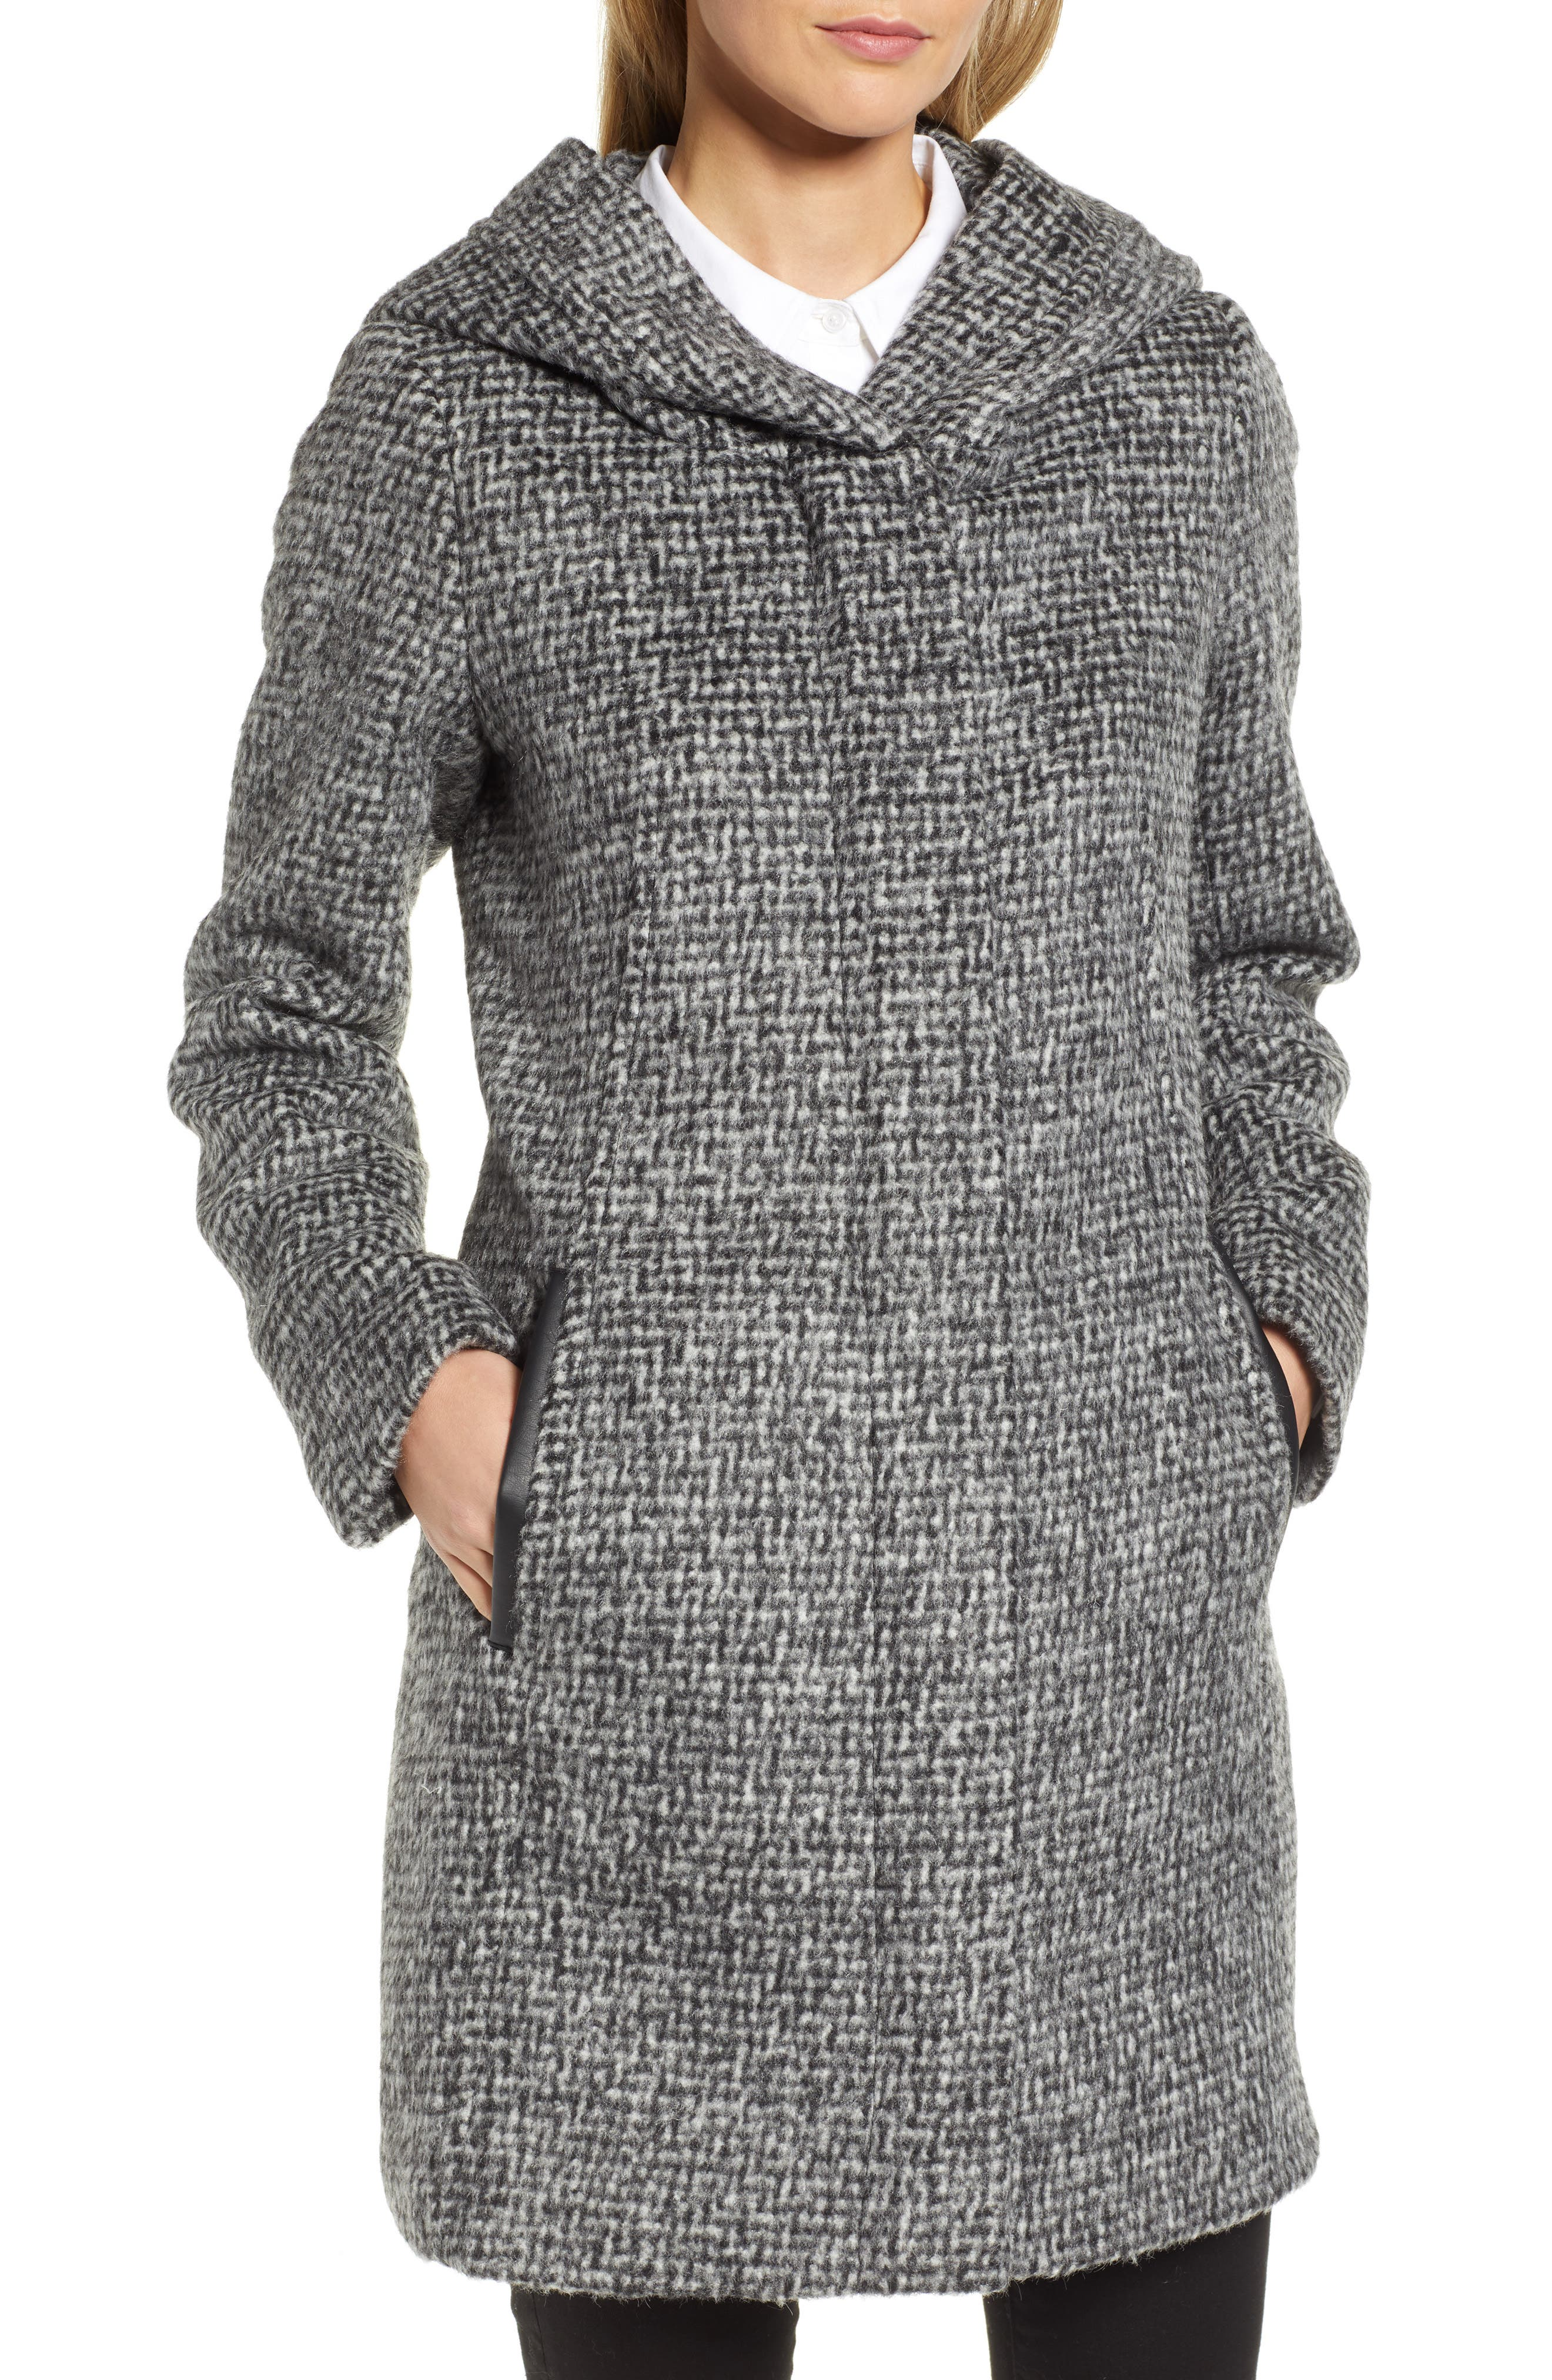 Fuzzy Houndstooth Coat,                             Alternate thumbnail 4, color,                             BLACK/ WHITE